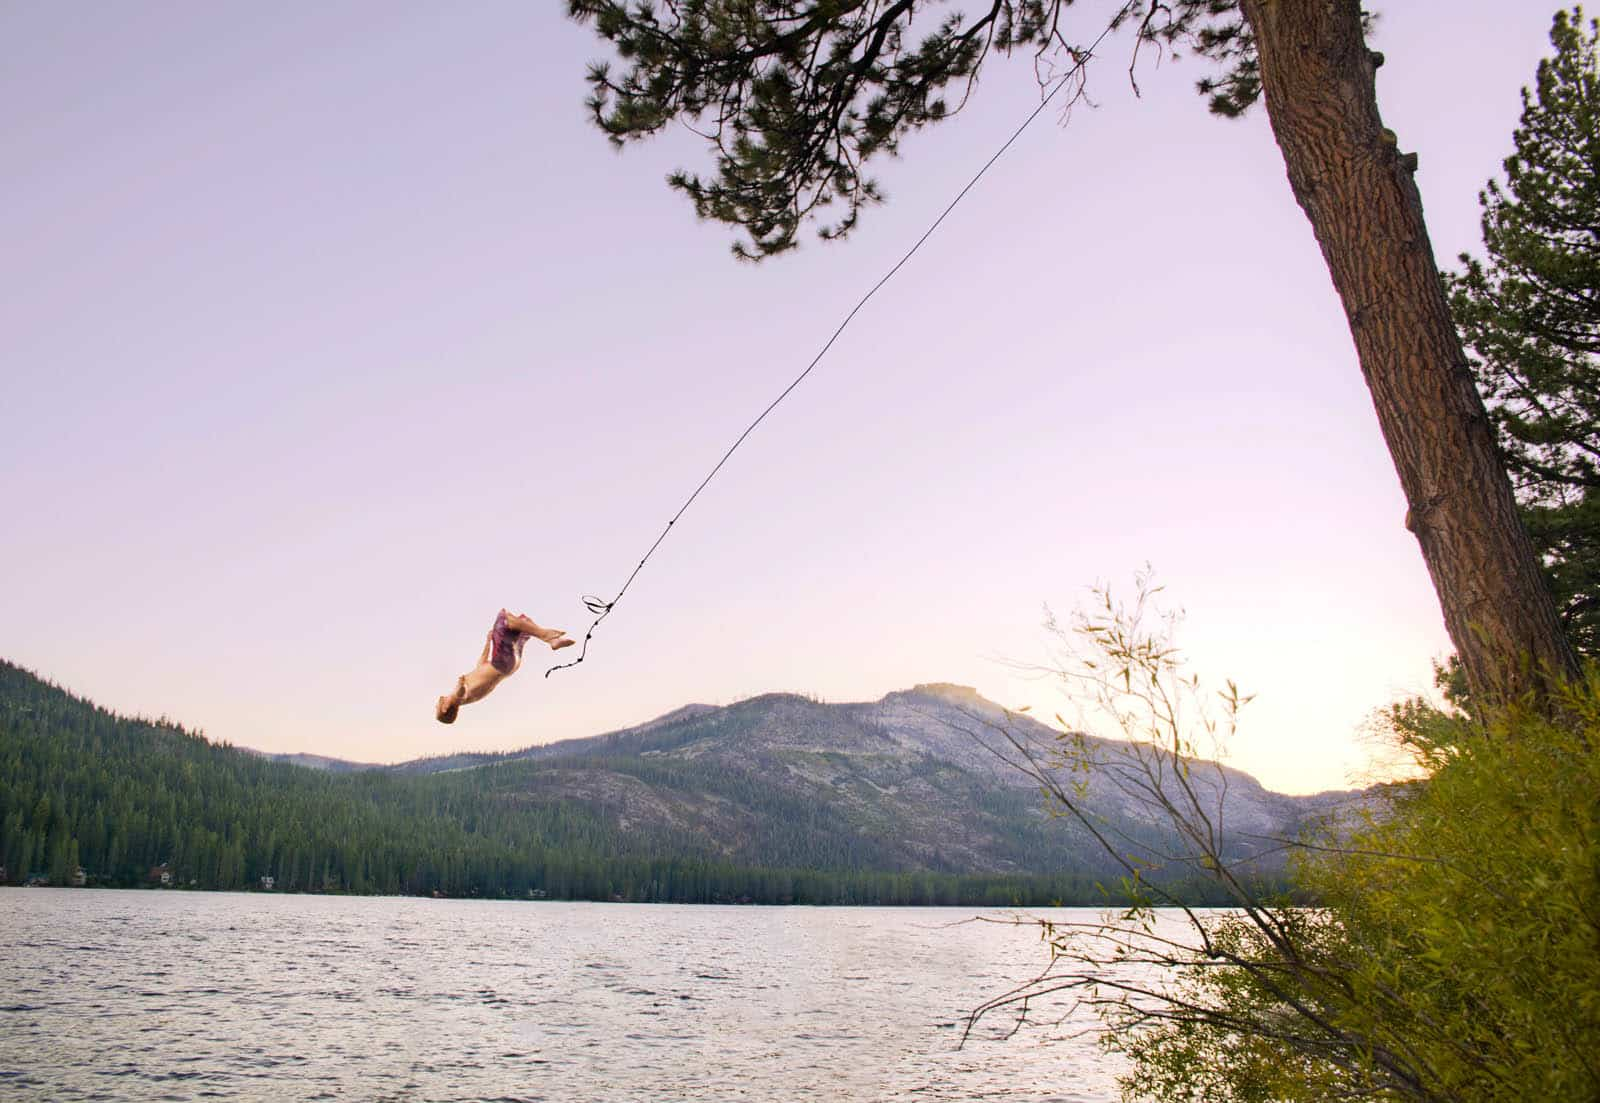 A you man doing a backflip off a rope swing.